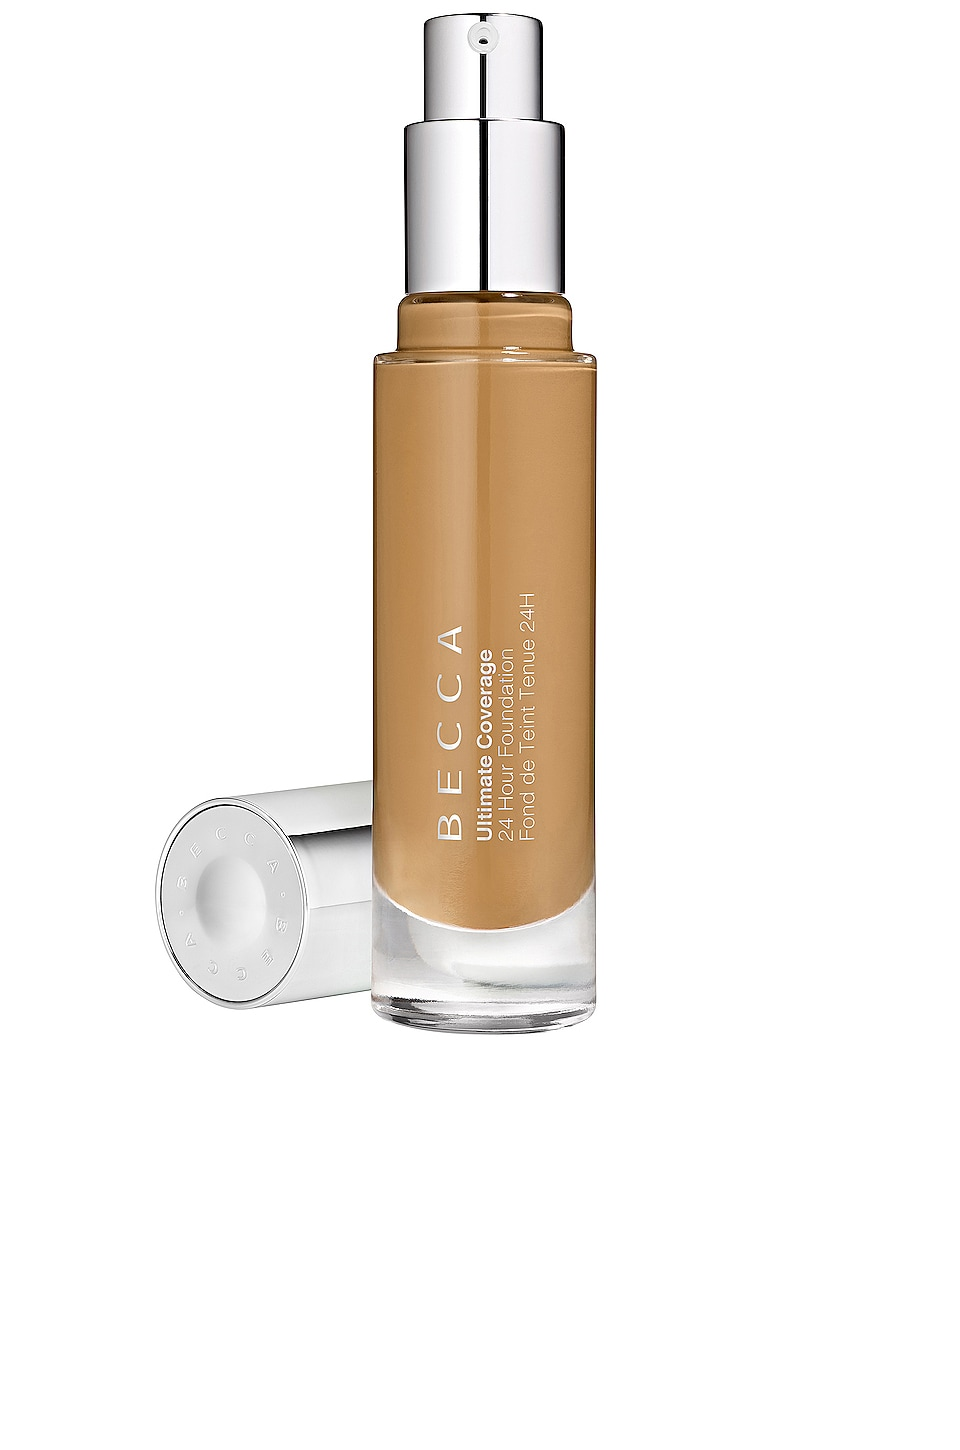 BECCA Ultimate Coverage 24 Hour Foundation in Olive